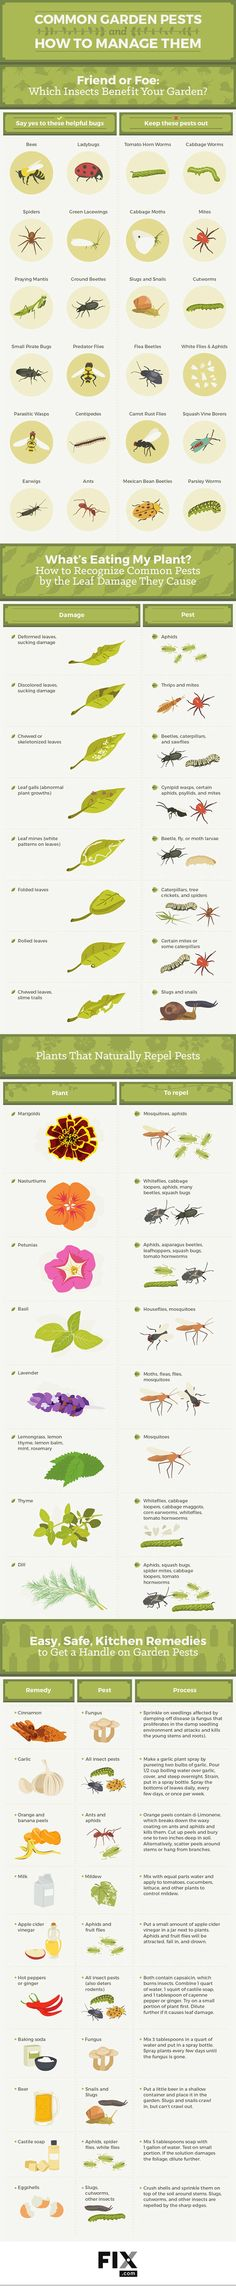 Common Garden Pests How to Manage Them Infographic #gardening